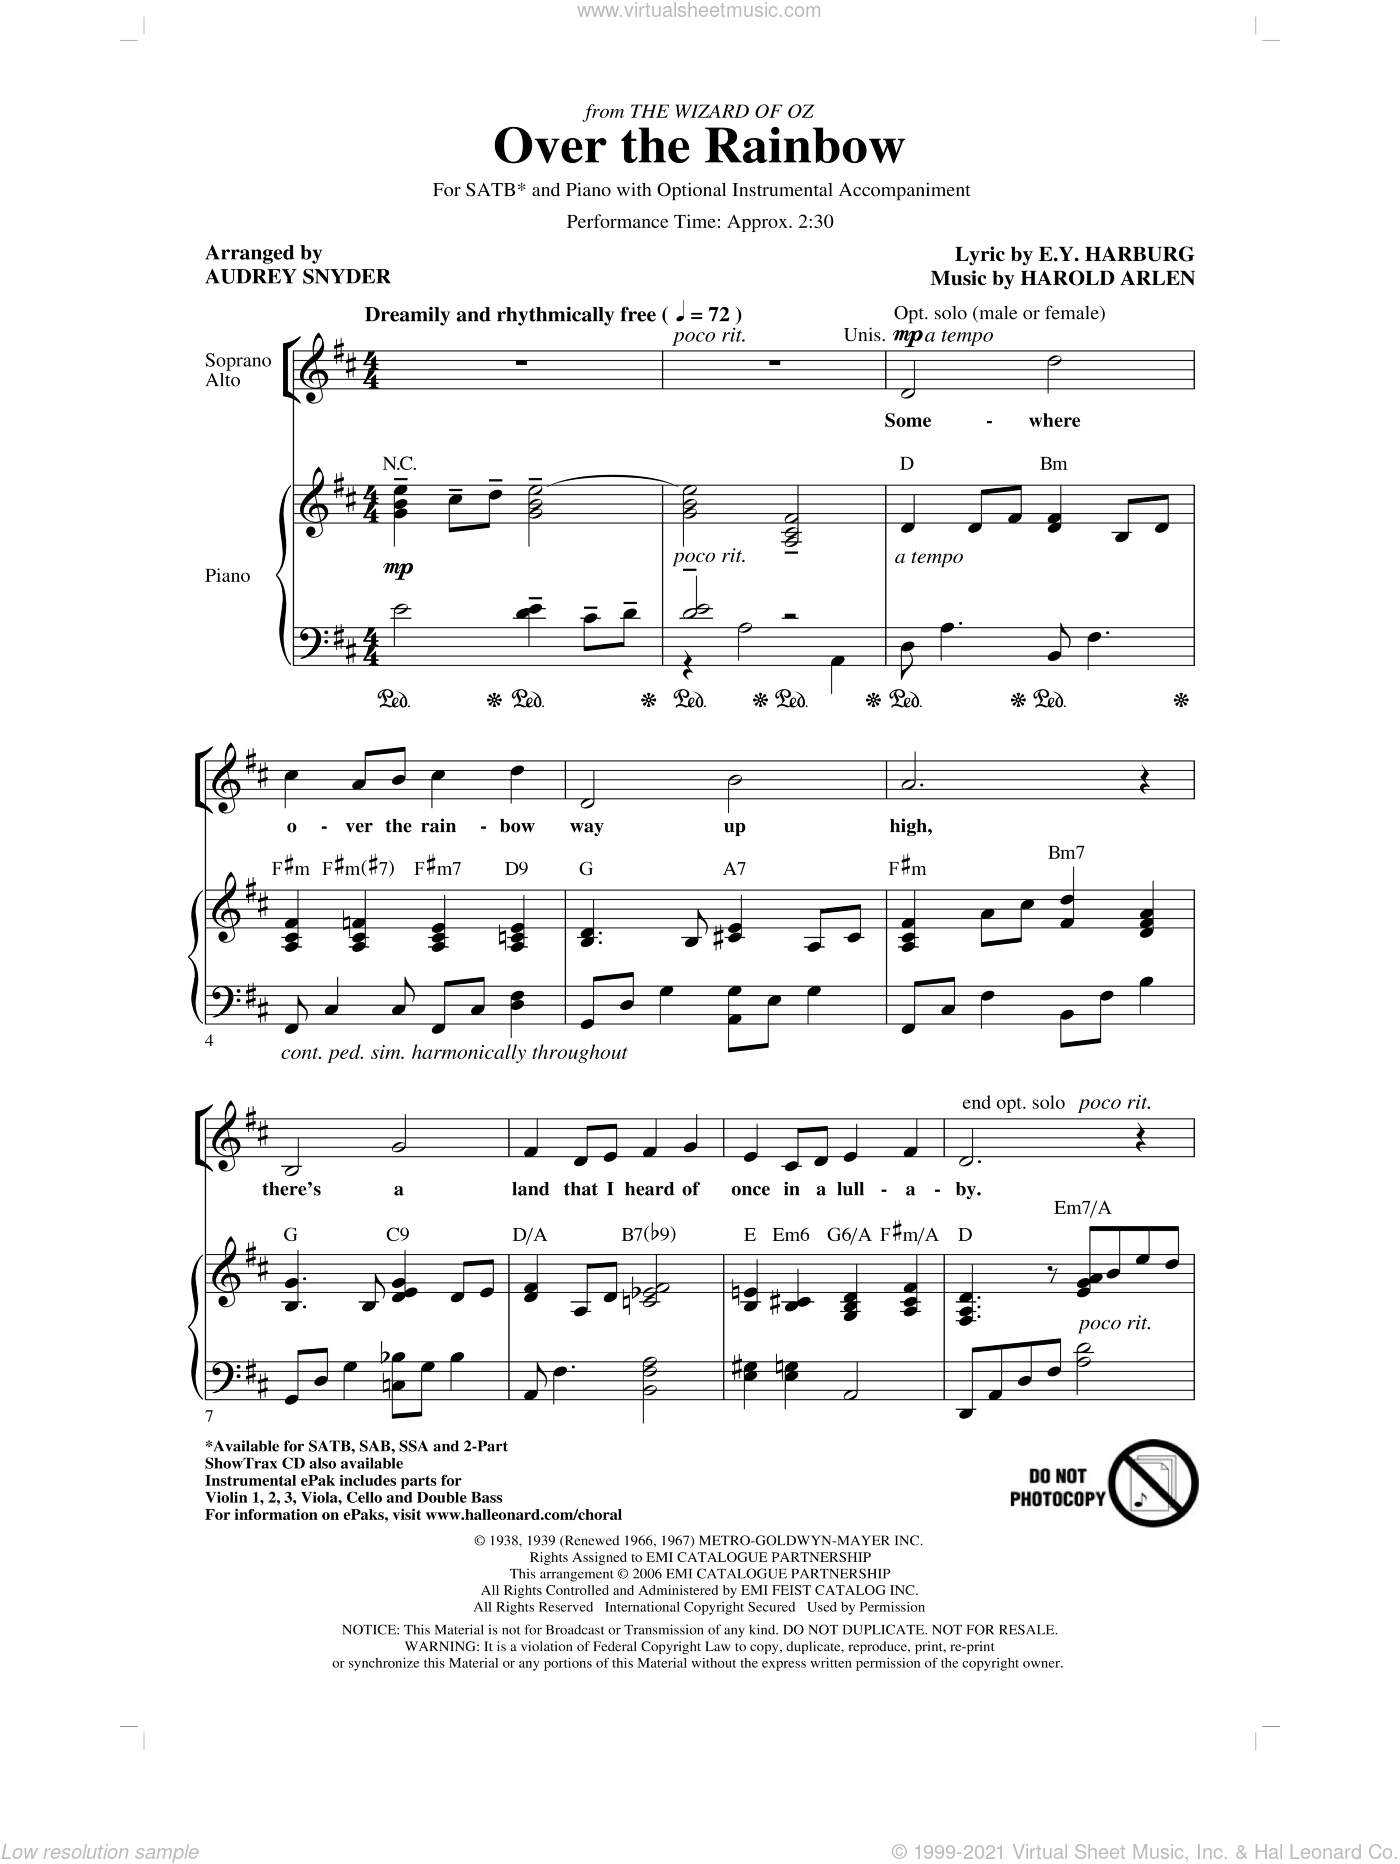 Over The Rainbow sheet music for choir (SATB: soprano, alto, tenor, bass) by Harold Arlen, E.Y. Harburg and Audrey Snyder, intermediate skill level